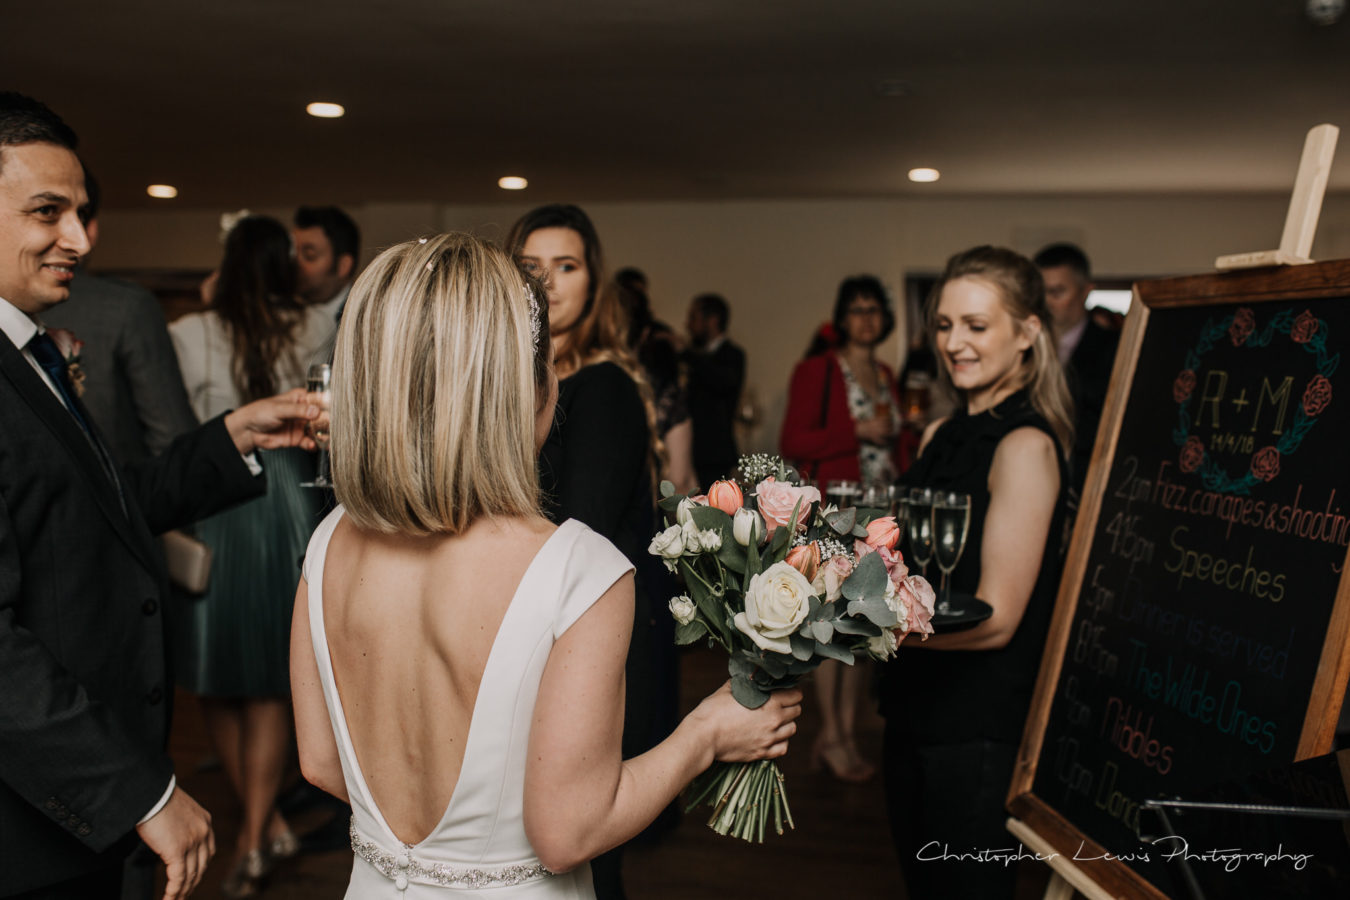 Thief-Hall-Wedding-Christopher-Lewis-Photography-46